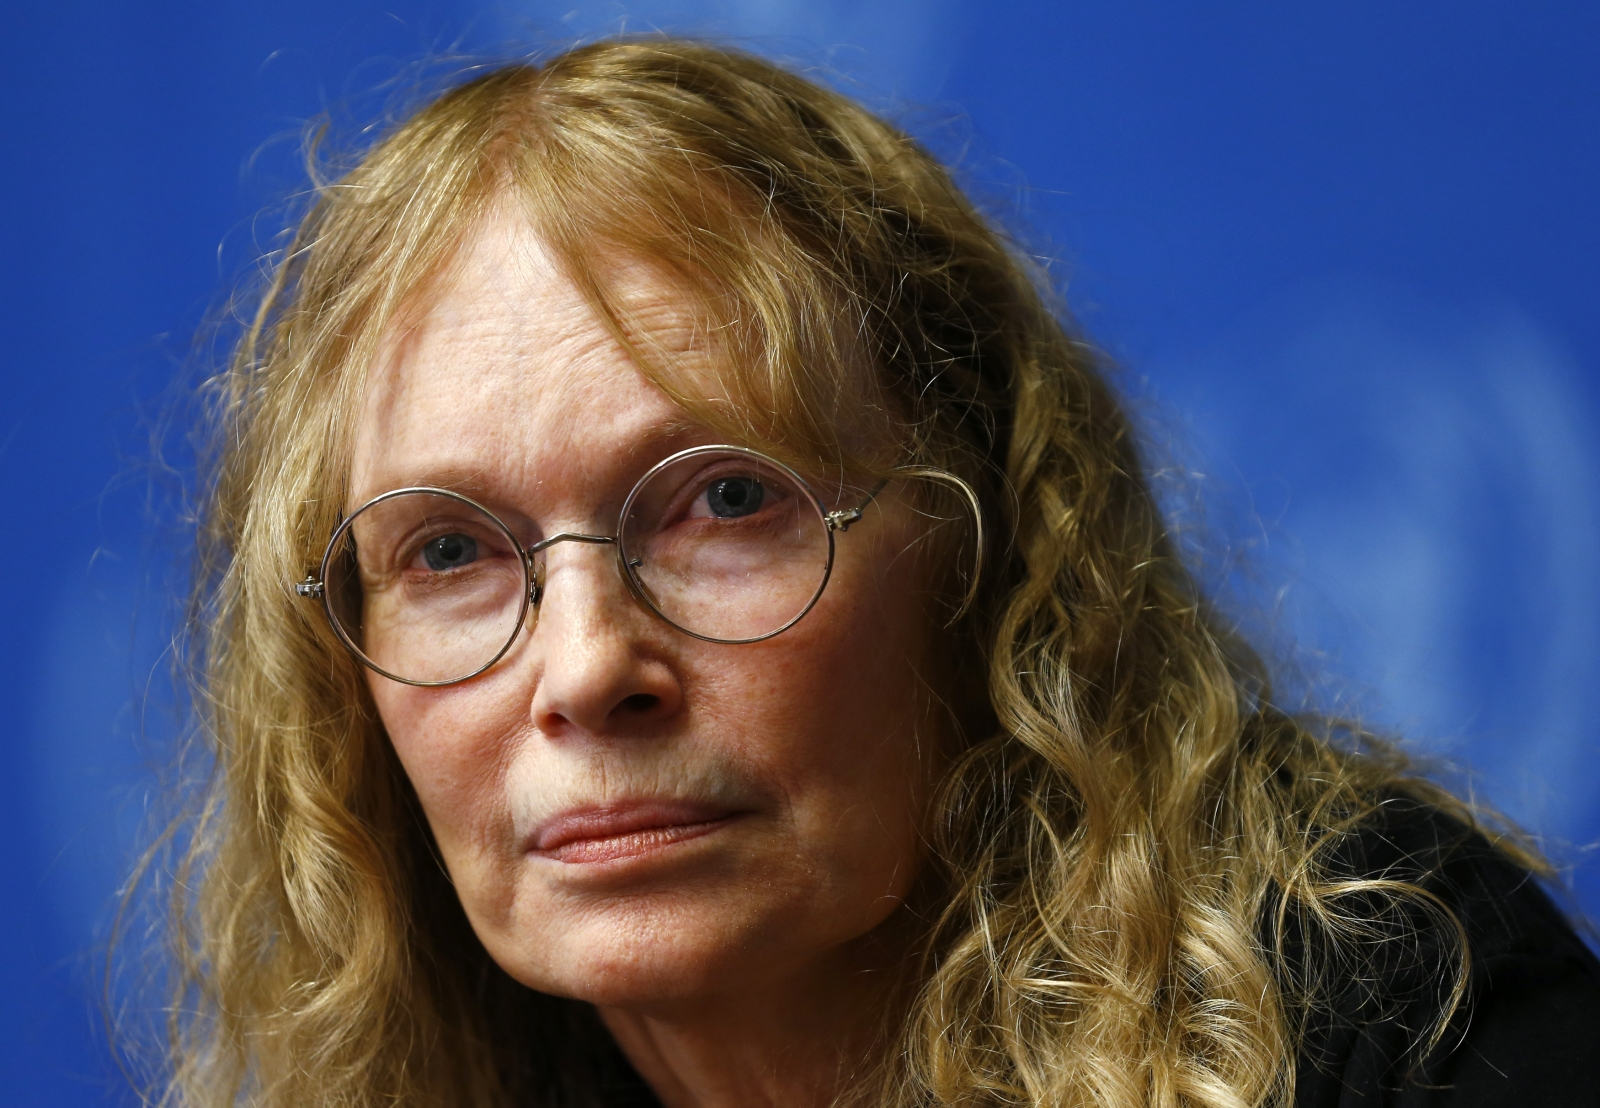 Mia Farrow, Her Family, Woody Allen: 40 Undeniable Facts